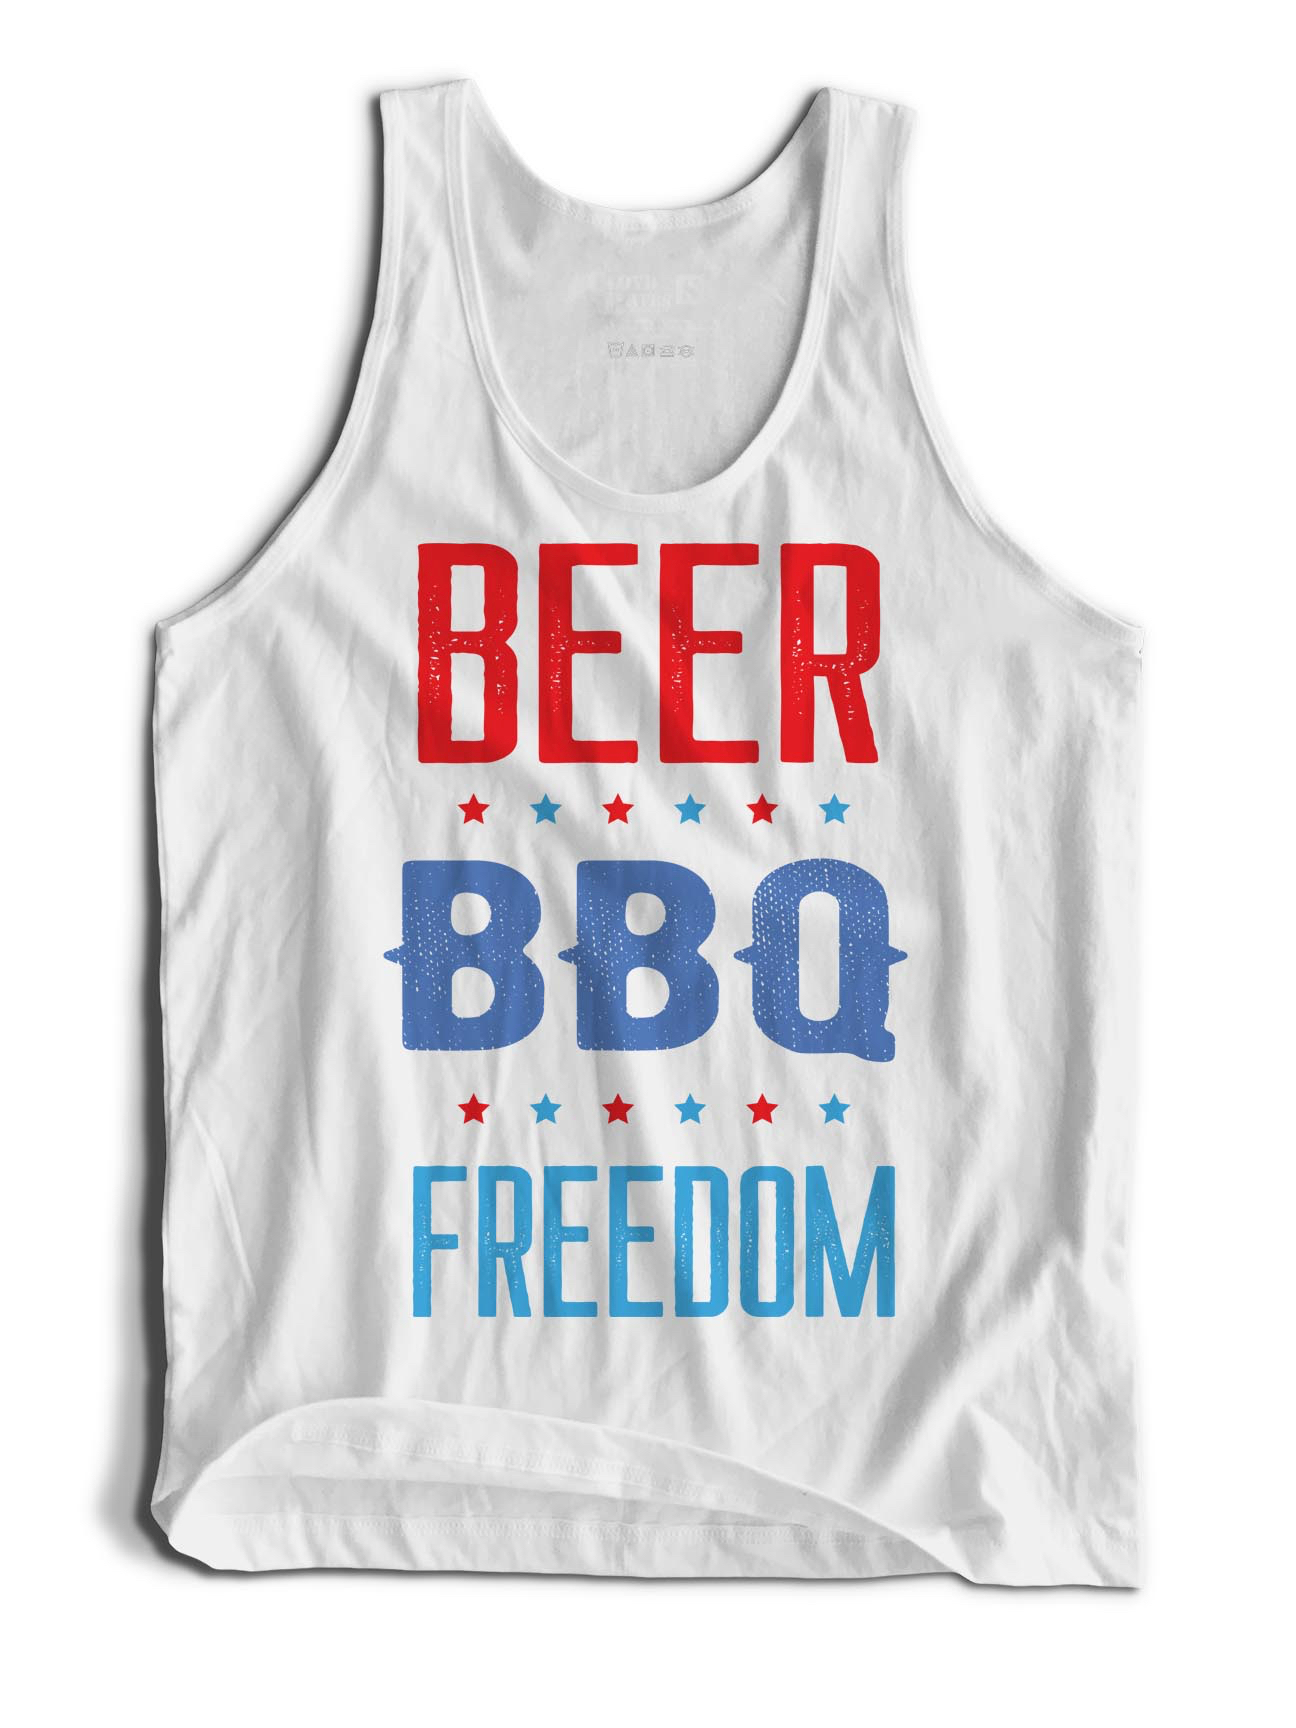 Tank Top - Beer. BBQ. Freedom.